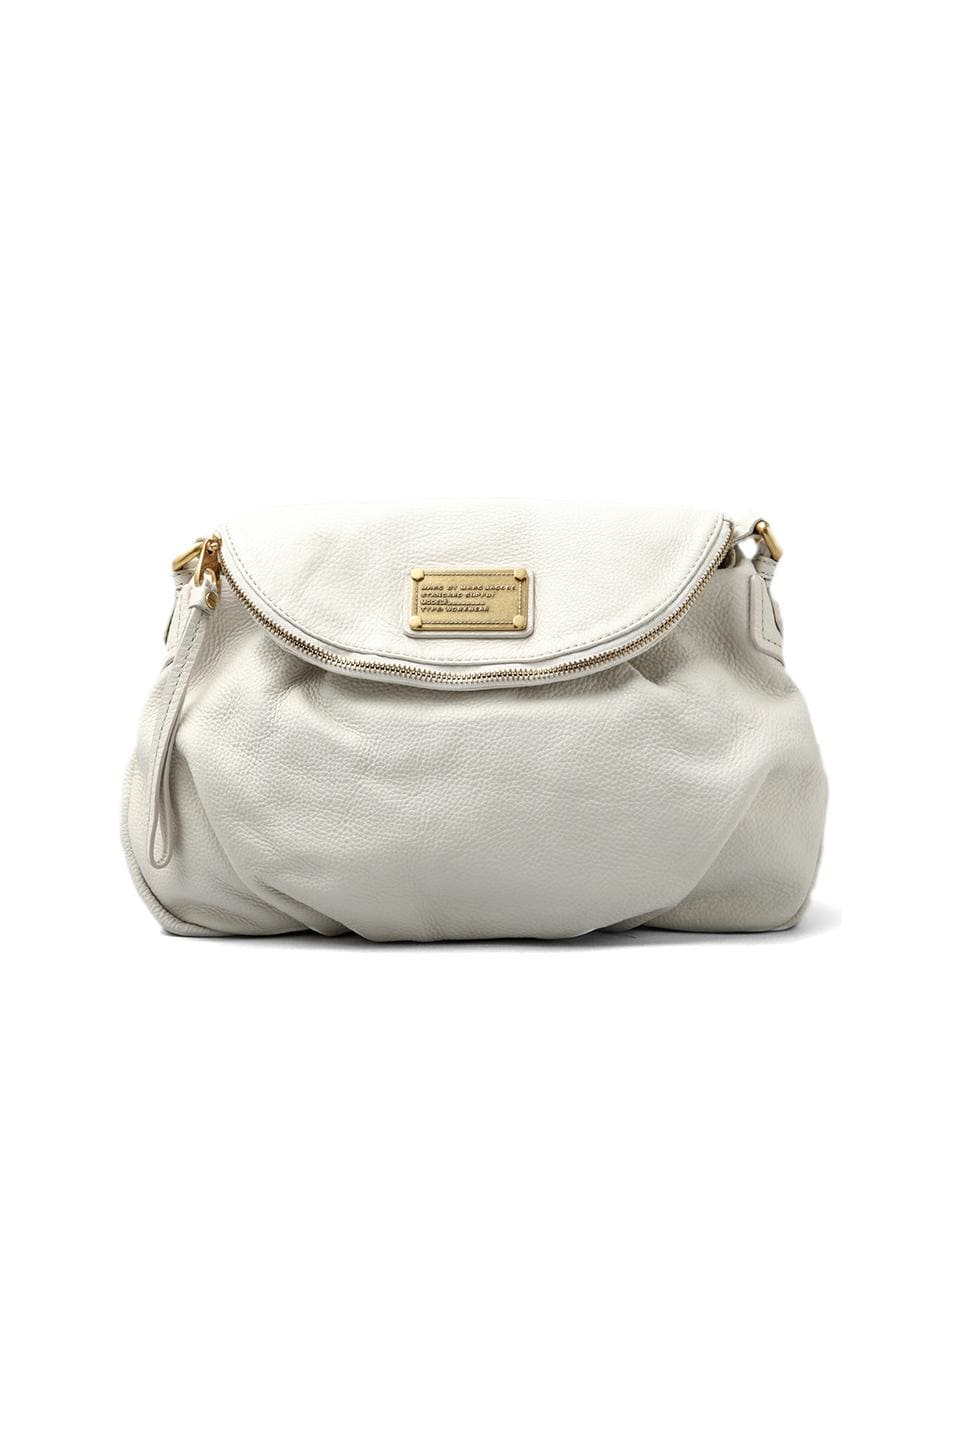 Marc by Marc Jacobs Classic Q Natasha in White Birch